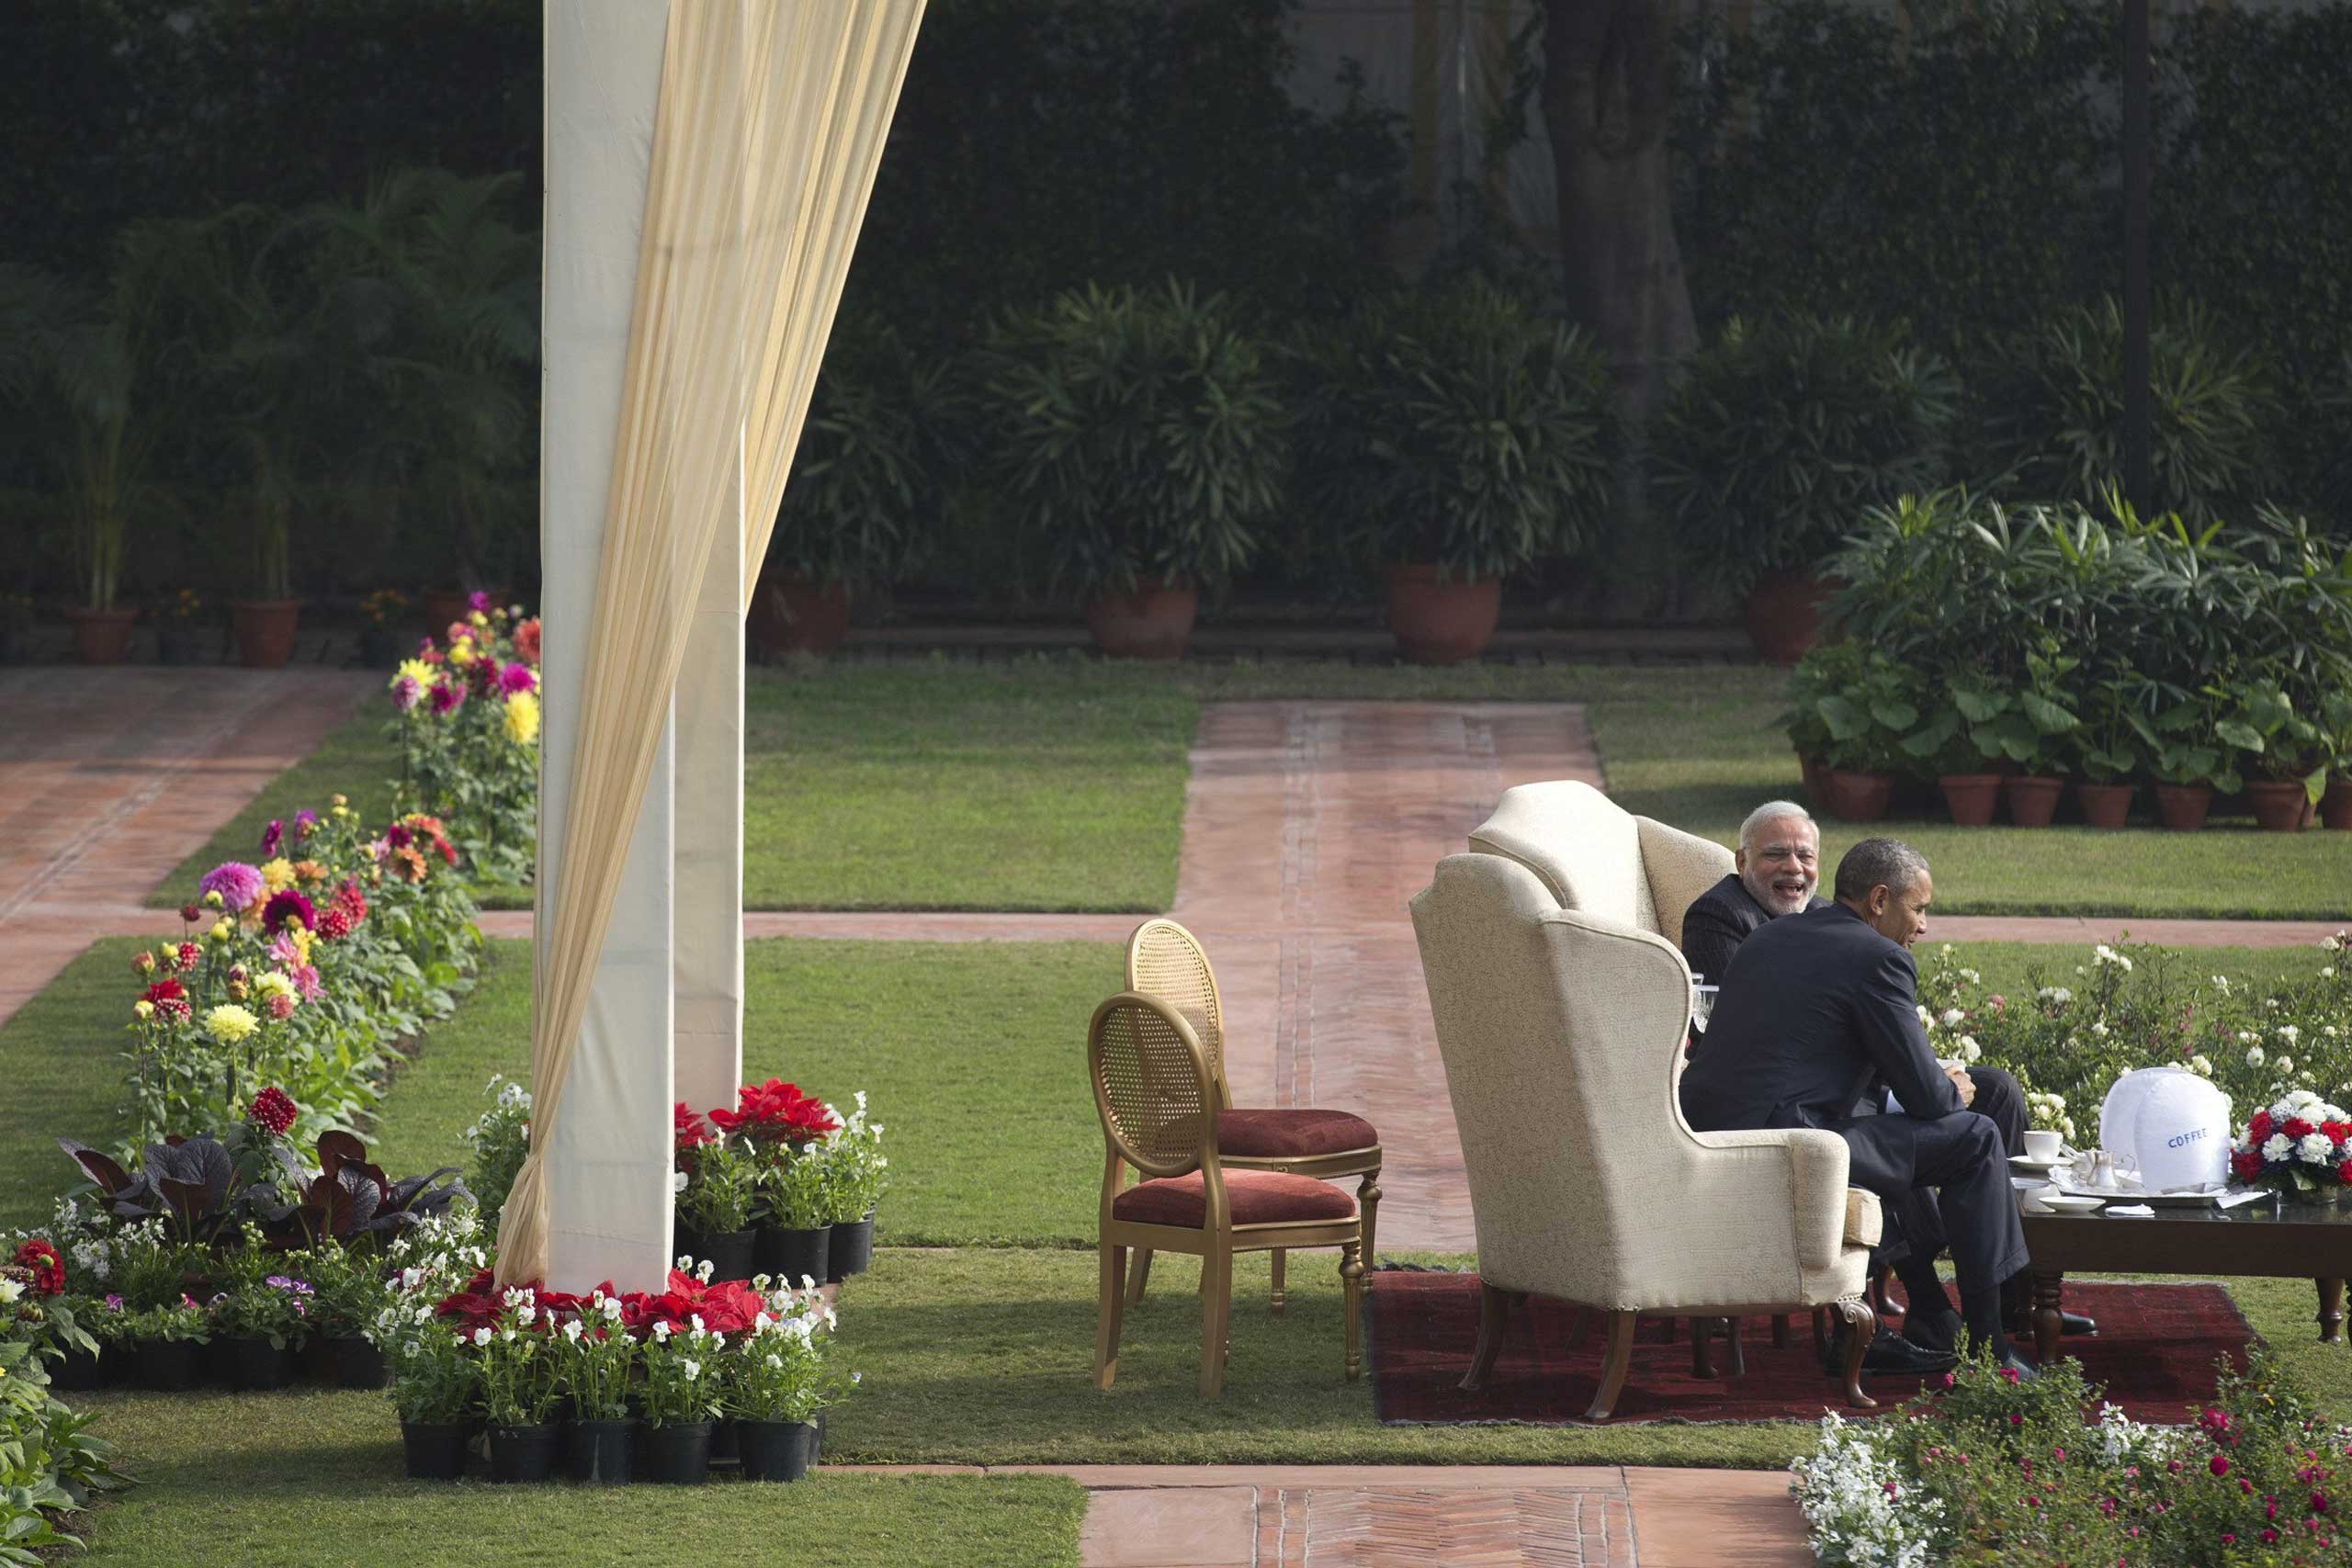 Jan. 25, 2015. President Barack Obama and Prime Minister Narendra Modi have tea at Hyderabad House in New Delhi. Obama swept aside past friction with India to report progress on climate change and civilian nuclear power cooperation as he sought to transform a fraught relationship marked by suspicion into an enduring partnership linking the world's oldest and largest democracies.